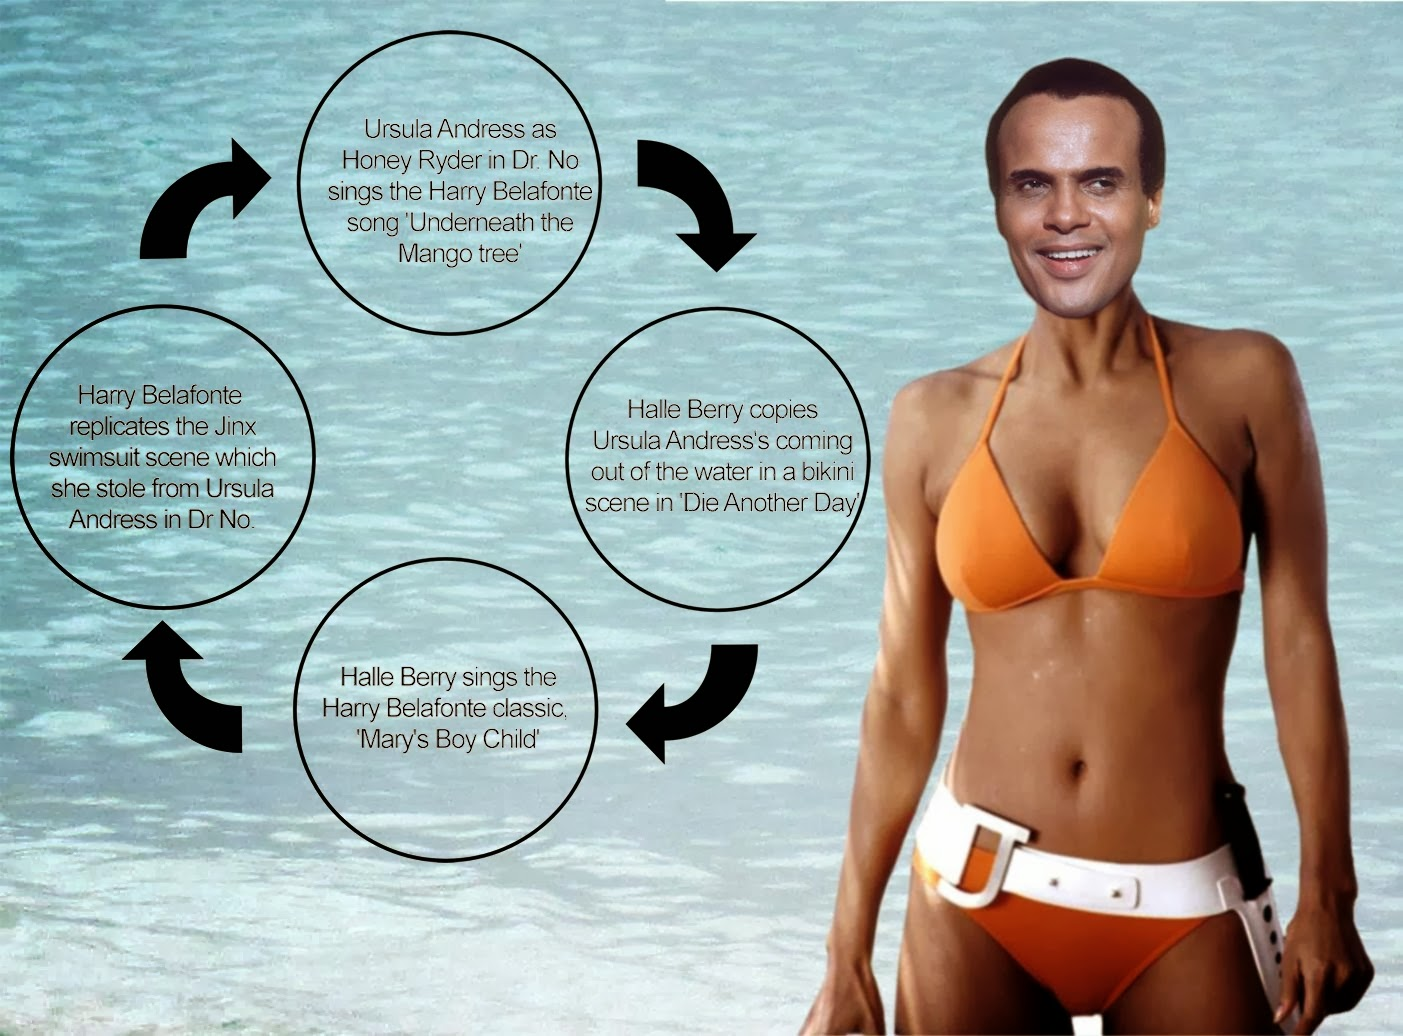 Harry Belafonte in Halle Berry's bikini